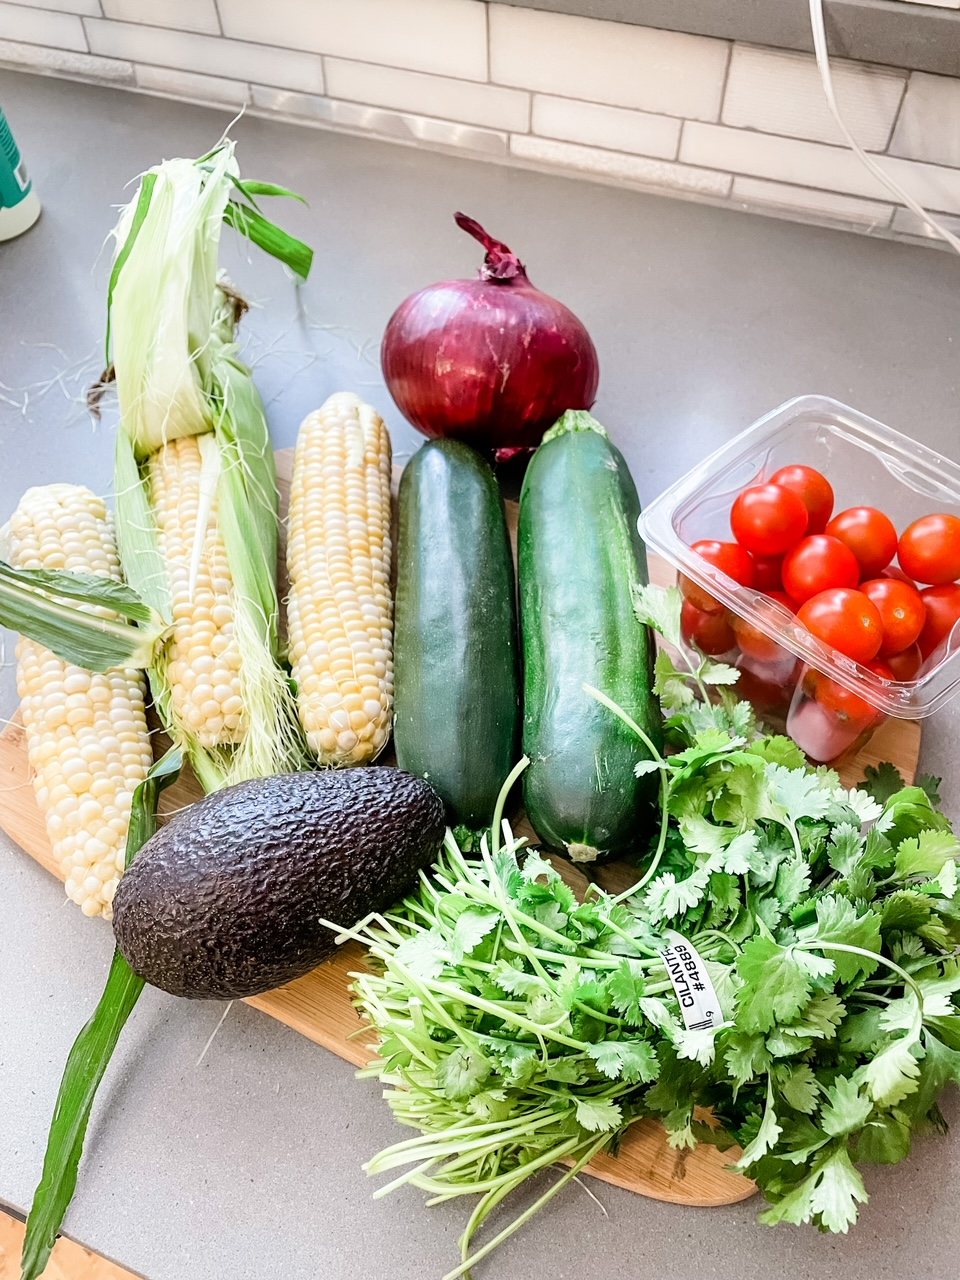 Corn, an avocado, cherry tomatoes, cucmbers, onions, and herbs on a wooden cutting tray